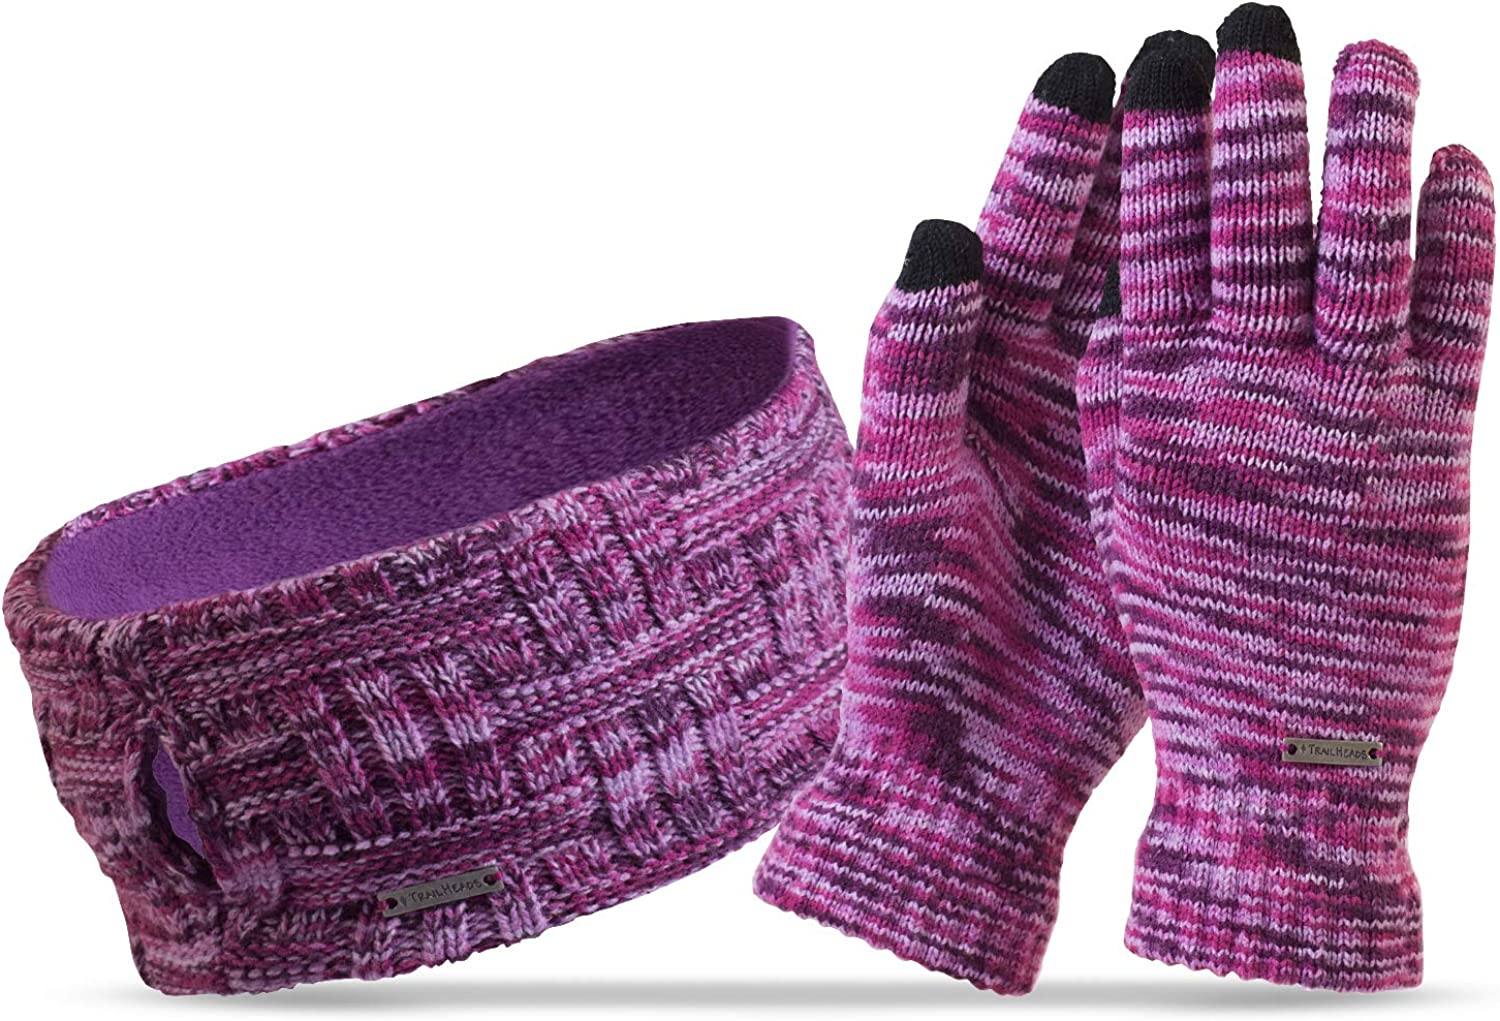 TrailHeads Women's Space Dye Knit Ponytail Headband and Touchscreen Gloves Gift Set